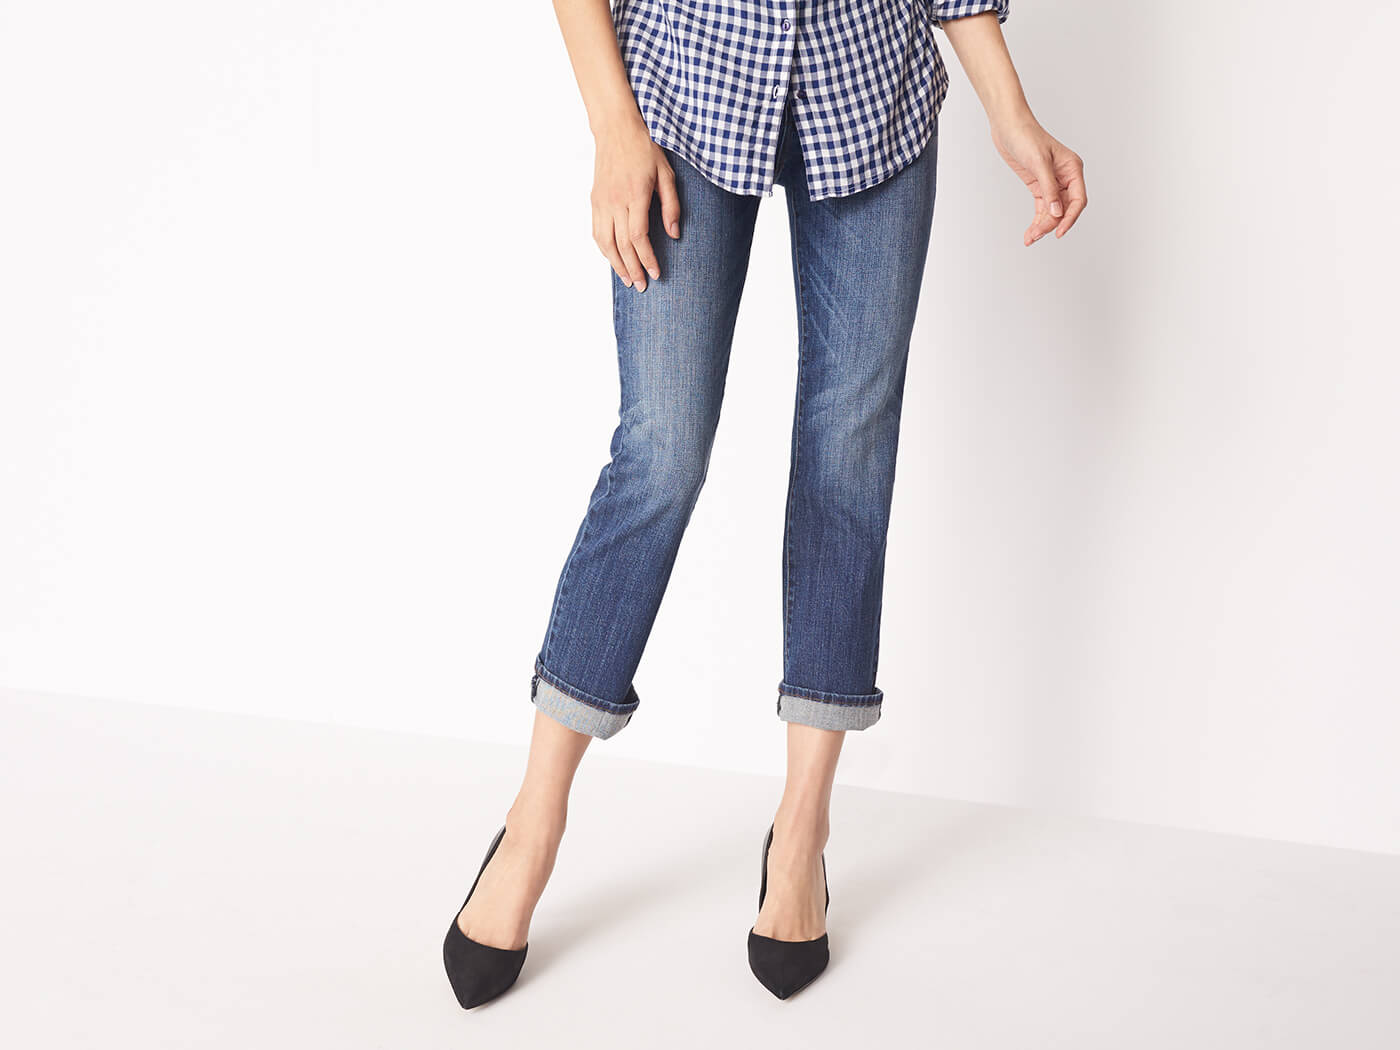 03_06_W_04W3_BLG_SPR17_Blog-How-To-Cuff-Your-Jeans_v1_0318_LS.jpg